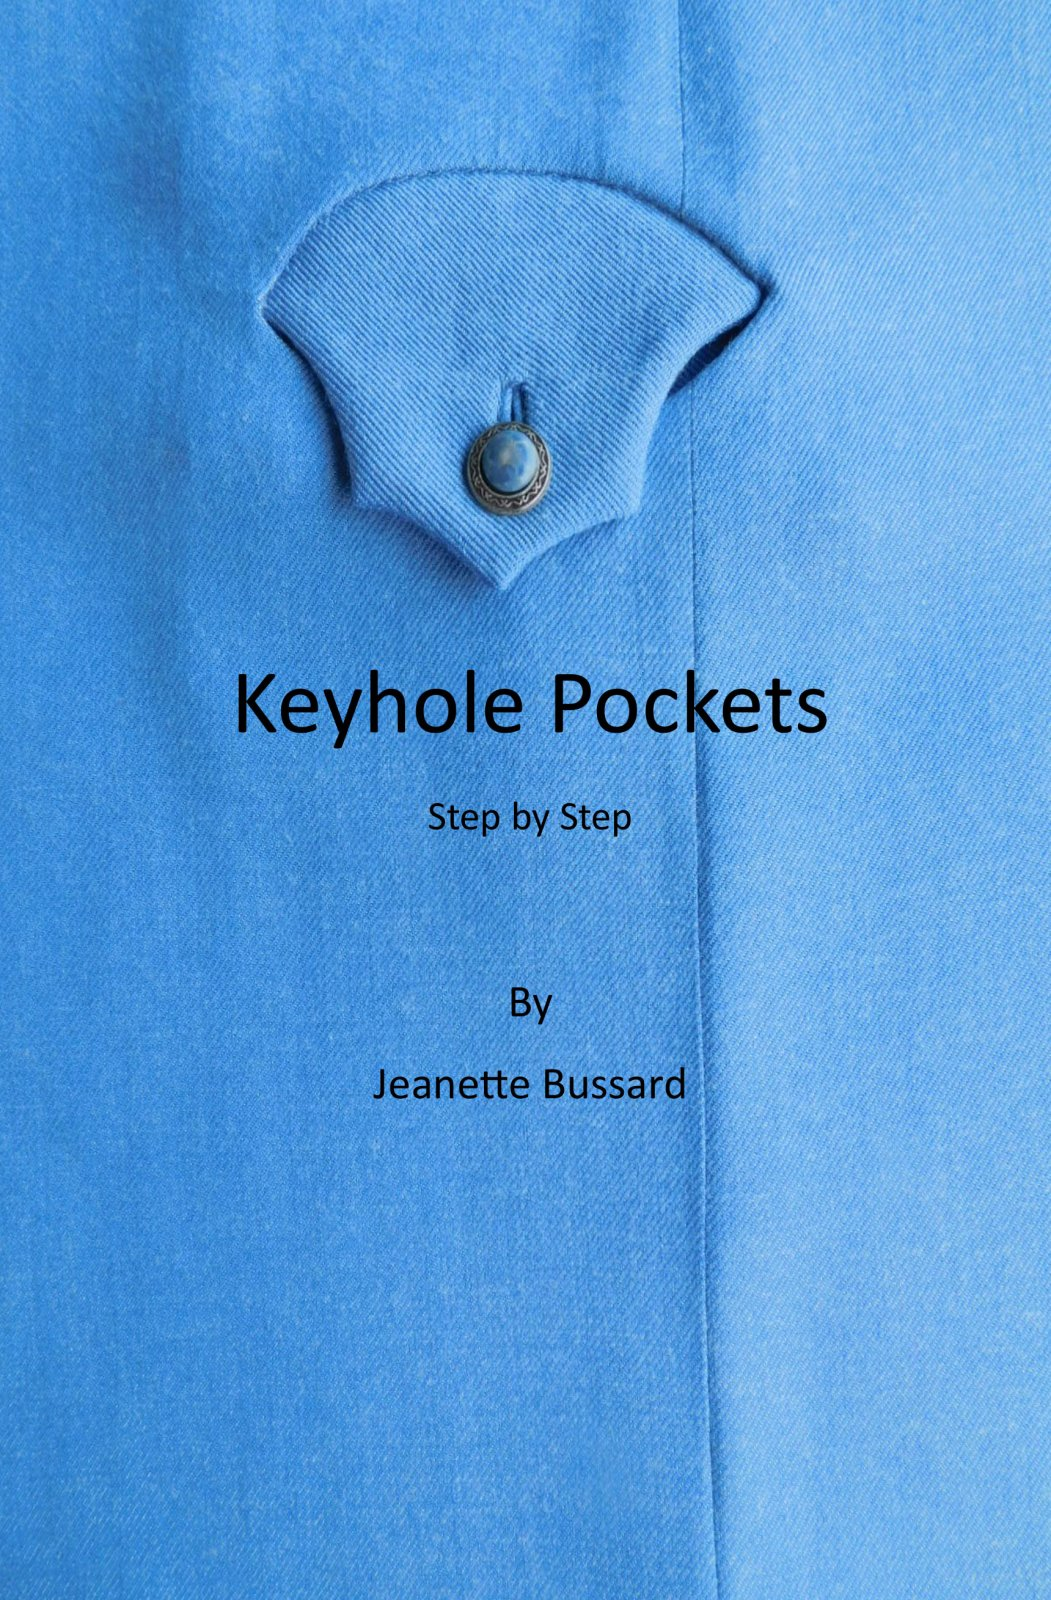 Keyhole Pocket Educational Booklet